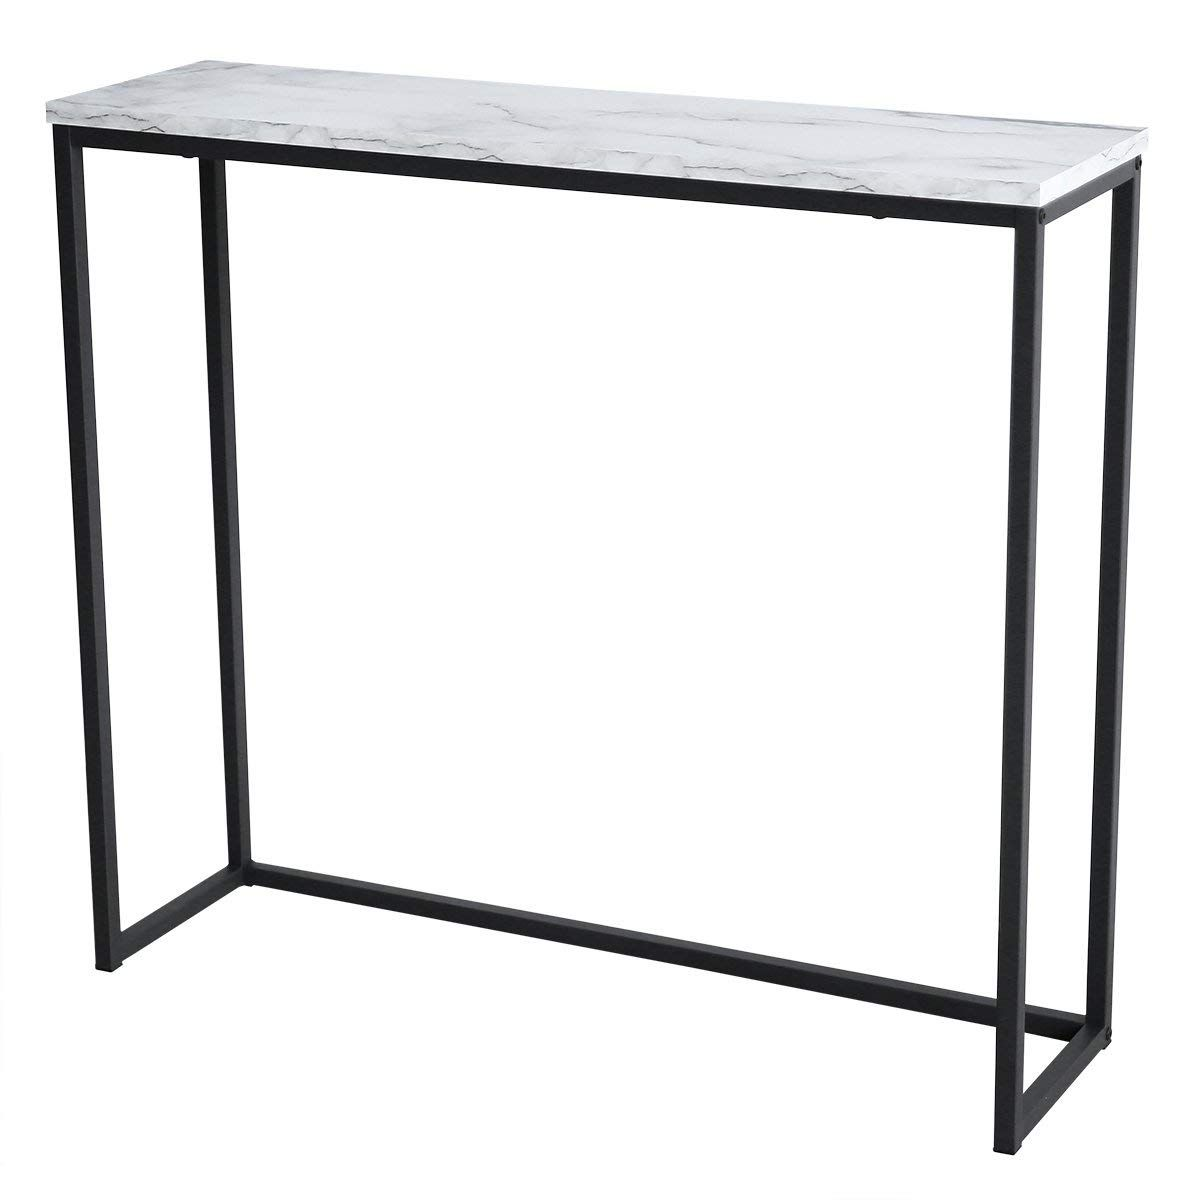 Modern Accent Faux Marble Console Table Black Metal Frame Entrance Hall Furniture Marble Console Table Hall Furniture